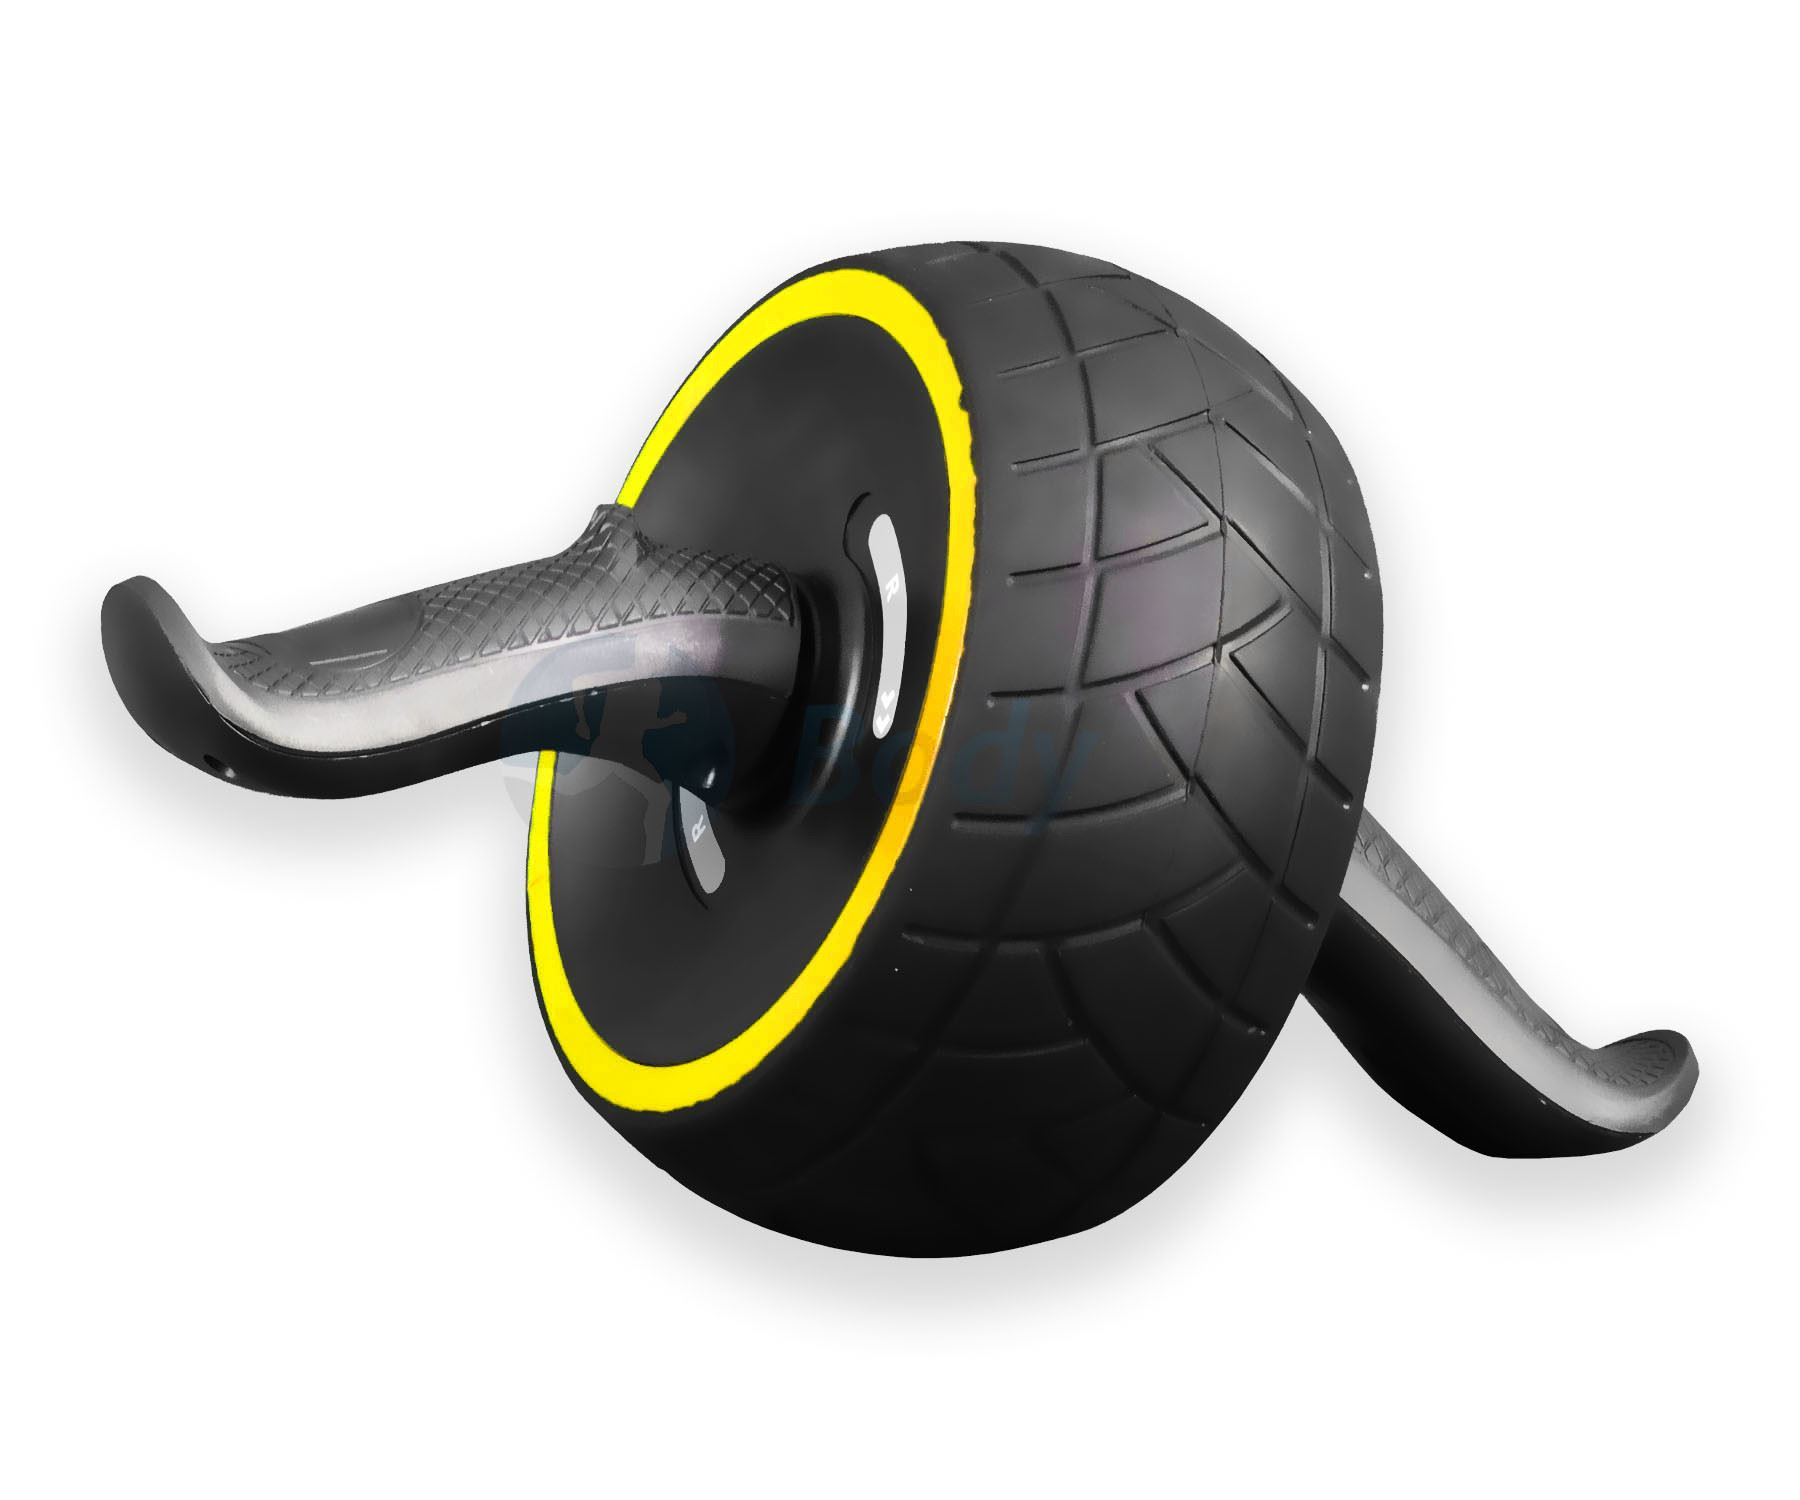 NUOVO-POTENTE-potere-ADDOMINALI-Carver-AB-HAND-GRIP-roller-wheel-HOME-GYM miniatura 8